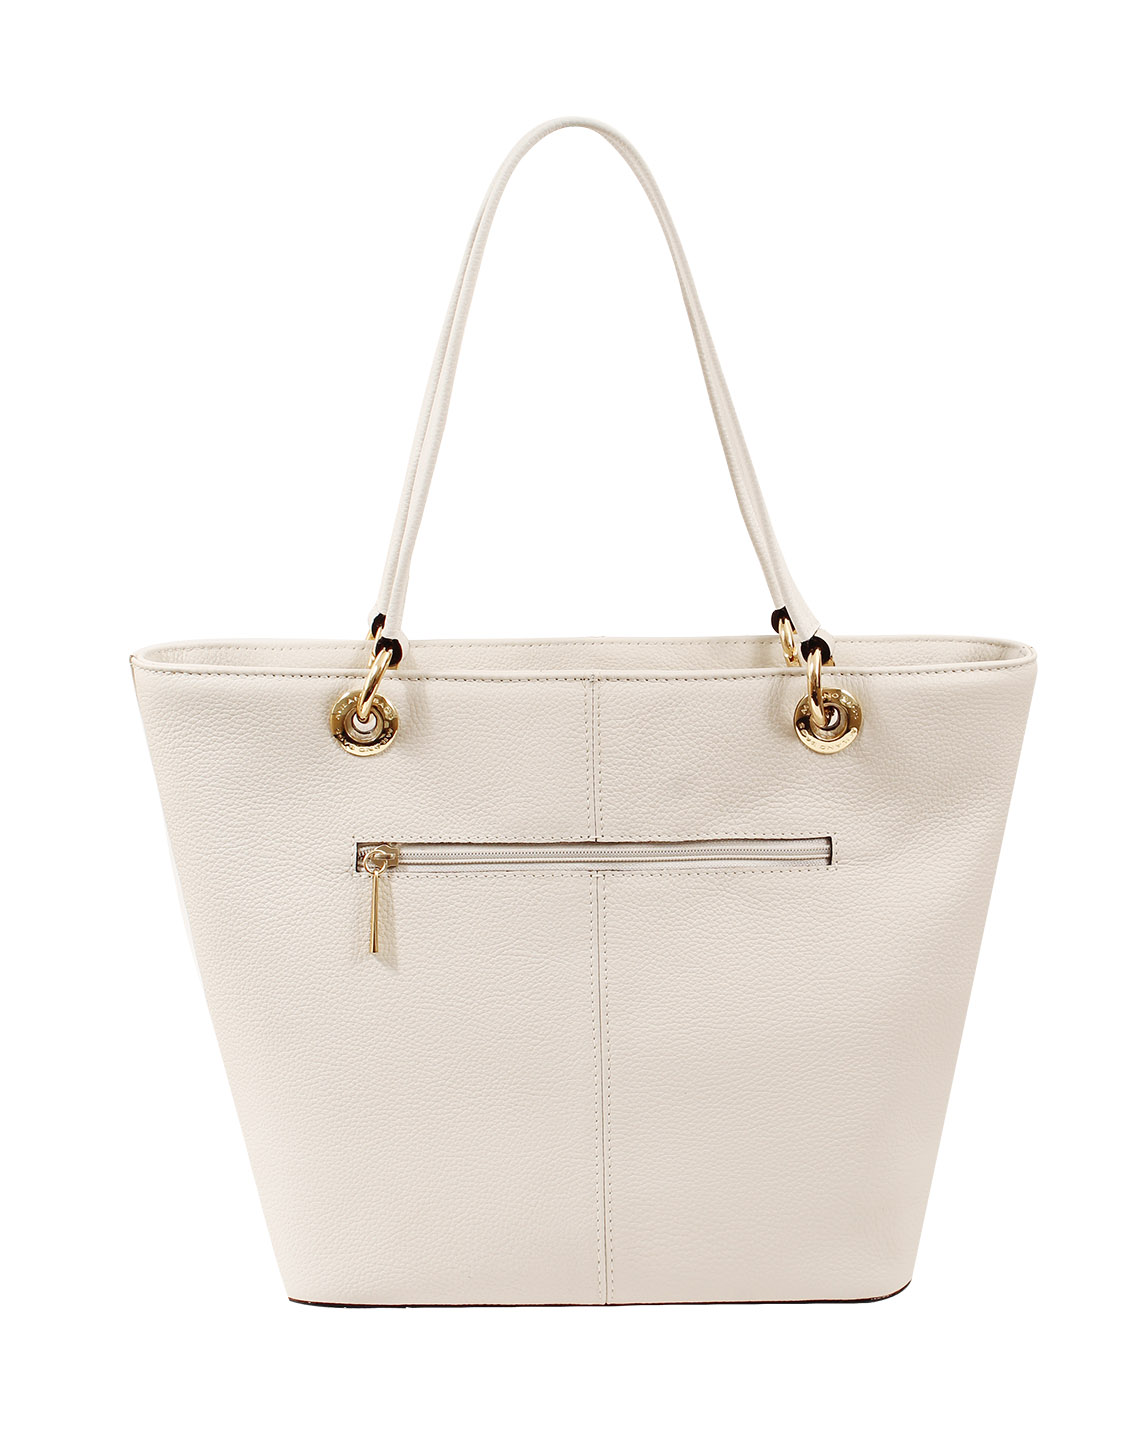 Cartera Tote Bag DS-2530 Color Blanco